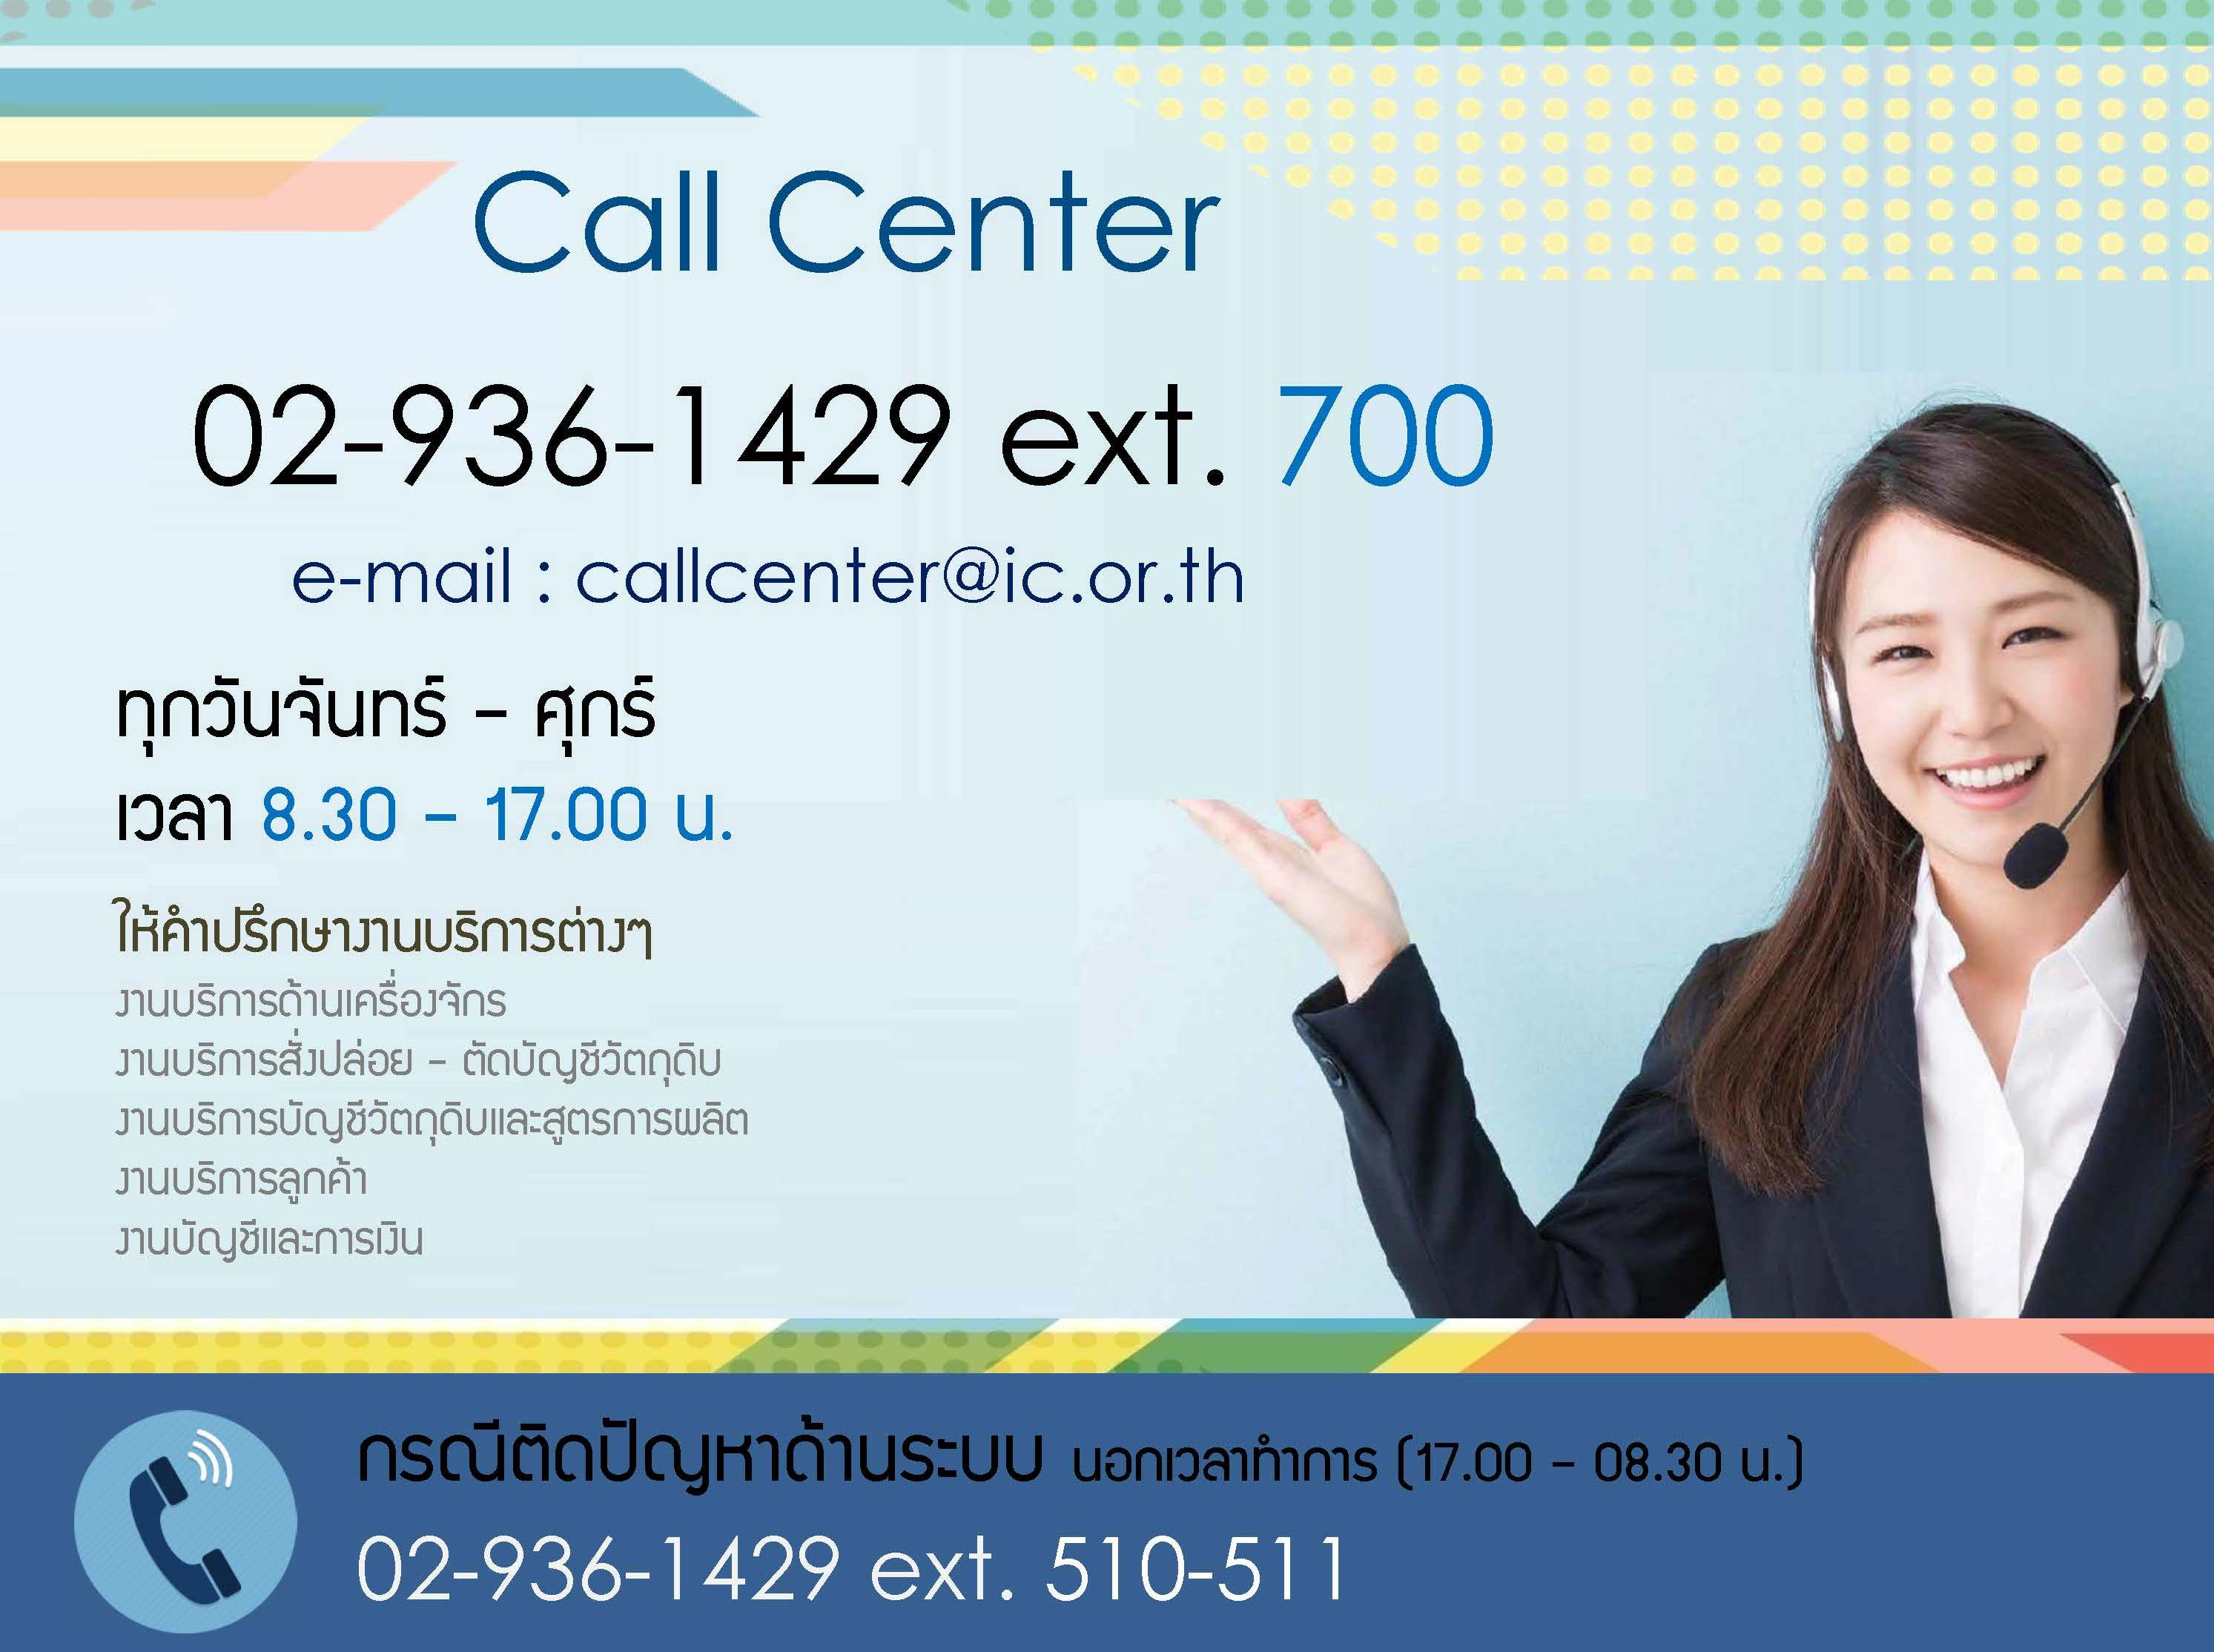 callcenter update website150161